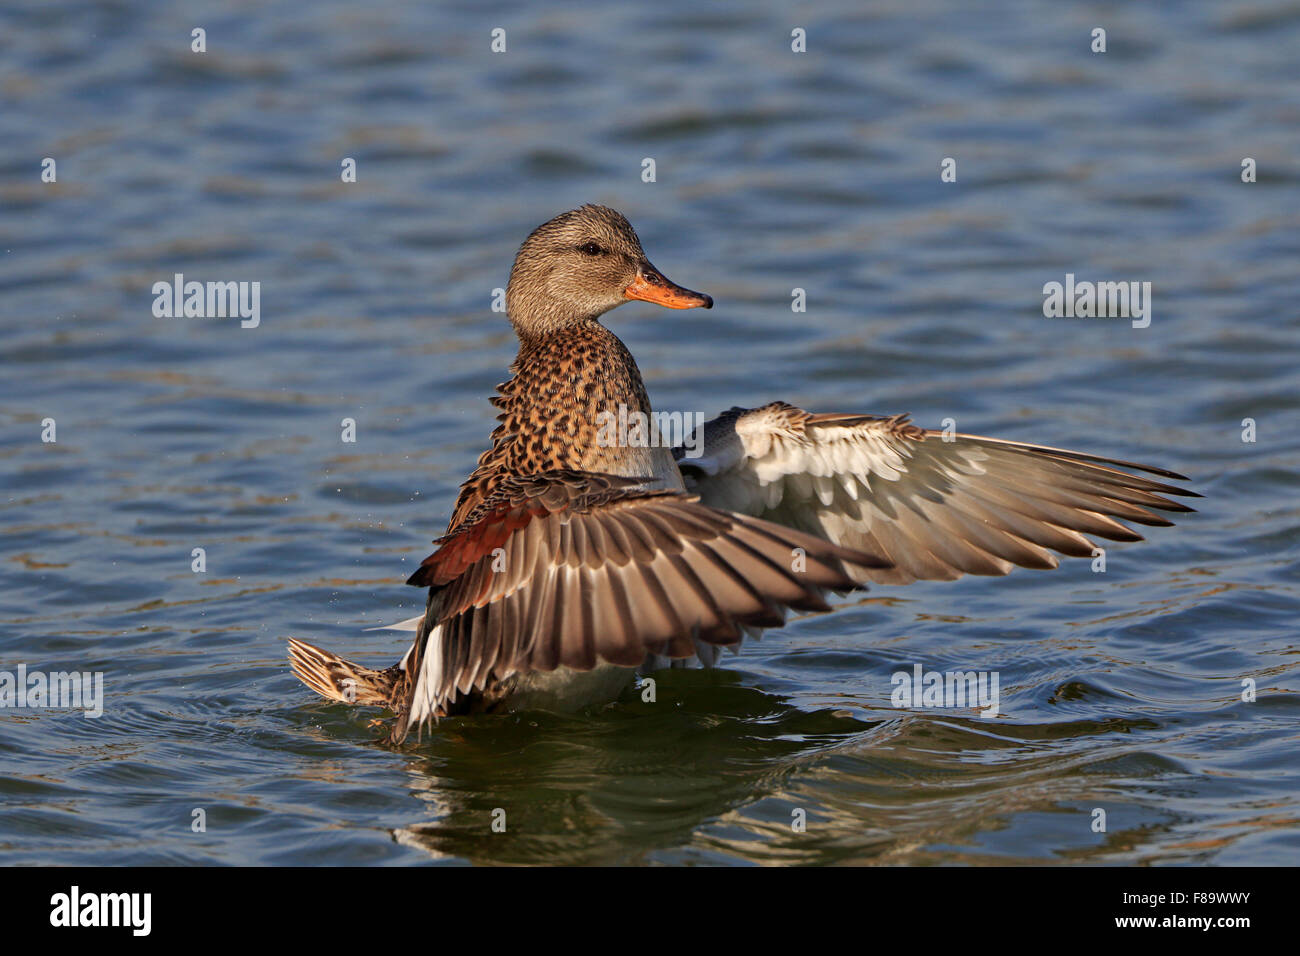 Male Gadwall flapping its wings - Stock Image